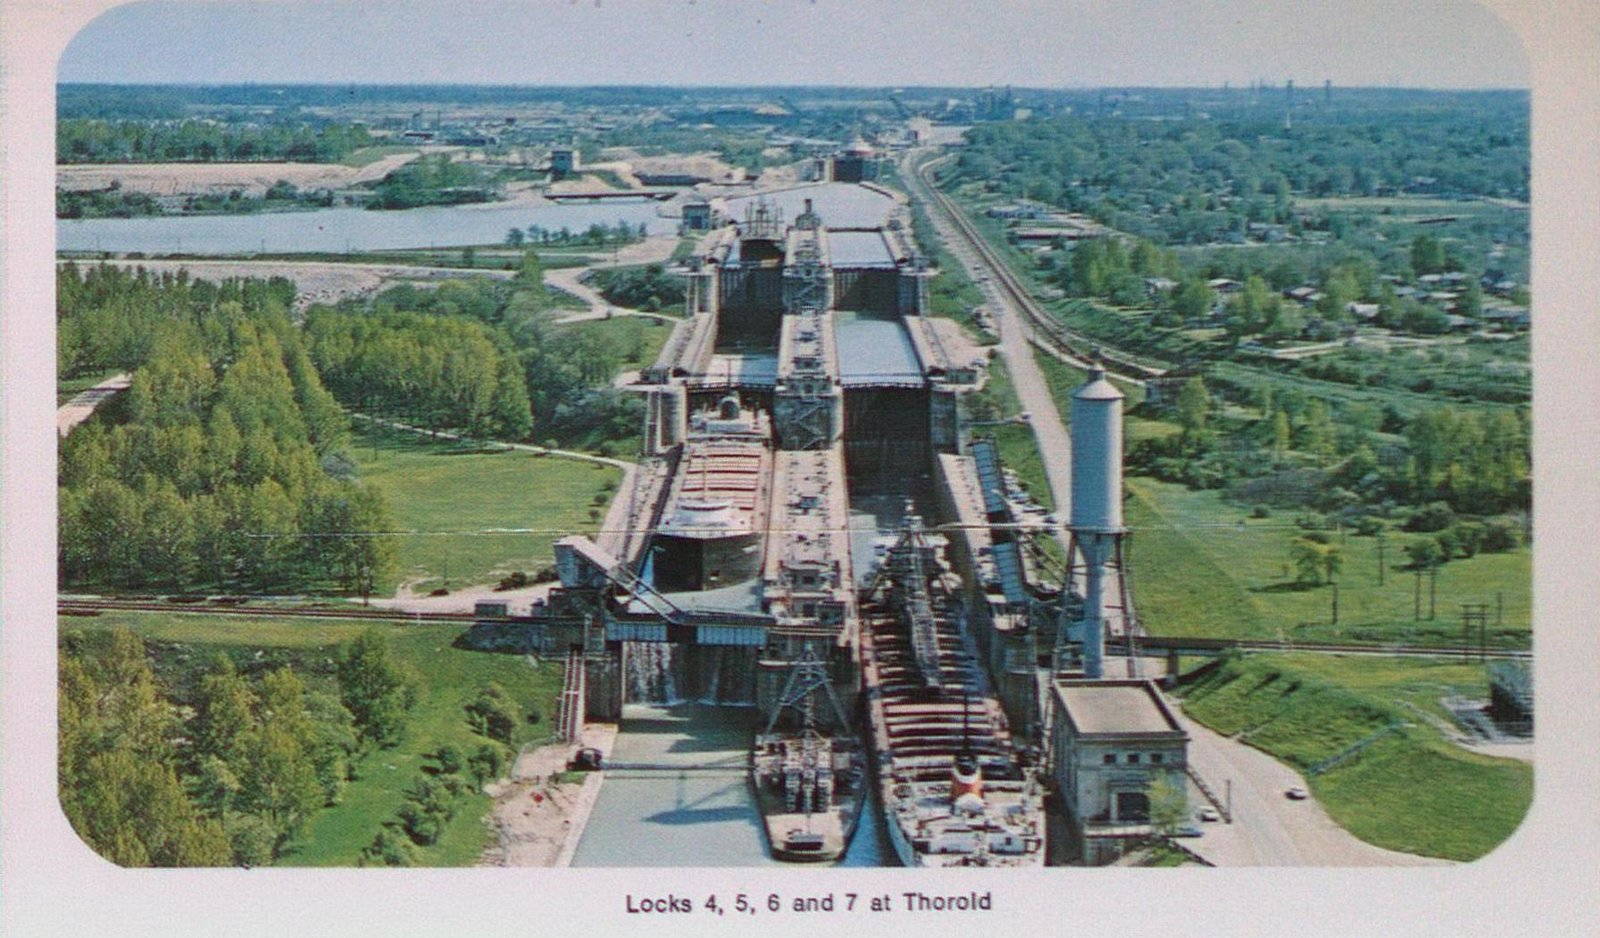 Locks Four, Five, Six and Seven on the Welland Ship Canal